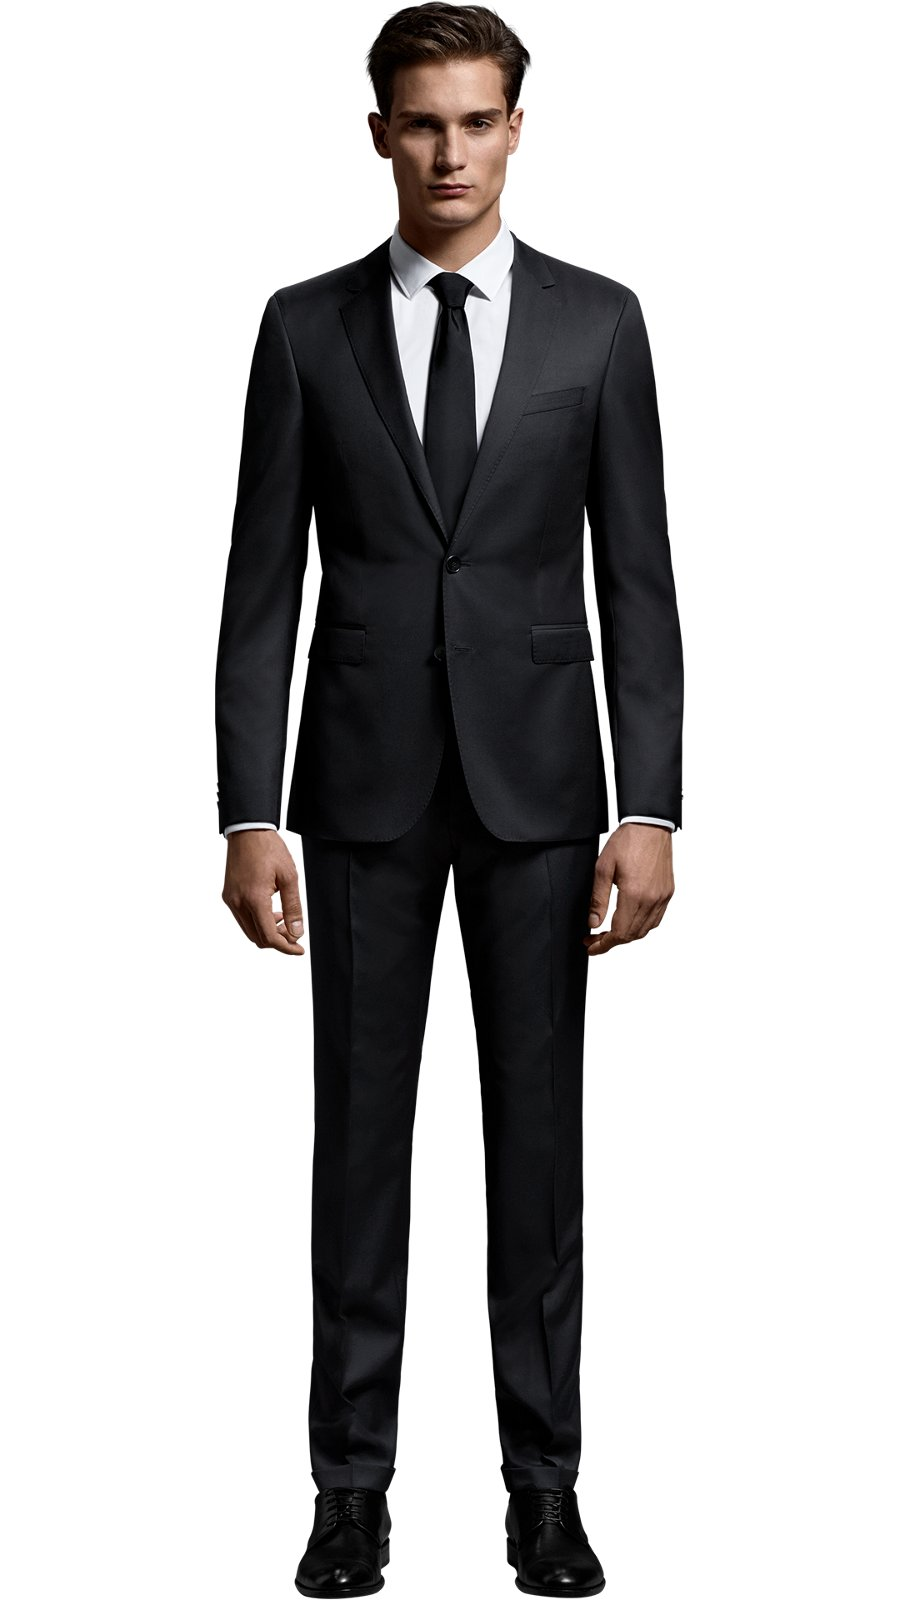 4a093d8dab8 Man wearing a mix and match black suit from Create your look collection by  BOSS ...